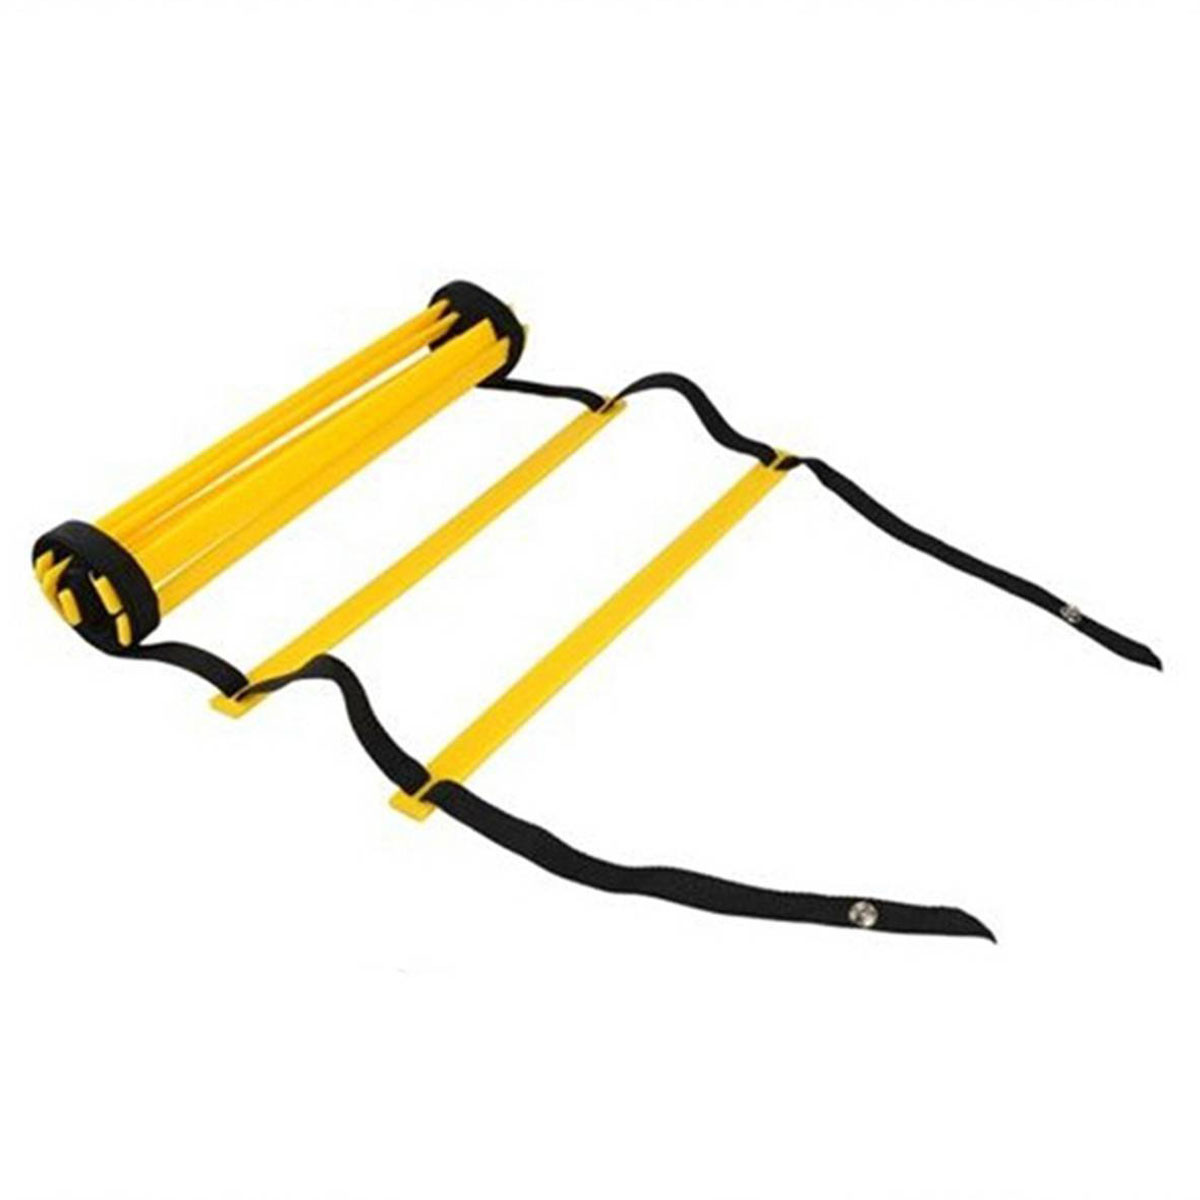 4 Styles 6/8/10/11 Rung Nylon Straps Training Ladders Agility Speed Ladder Stairs For Soccer And Football Speed Ladder Equipment